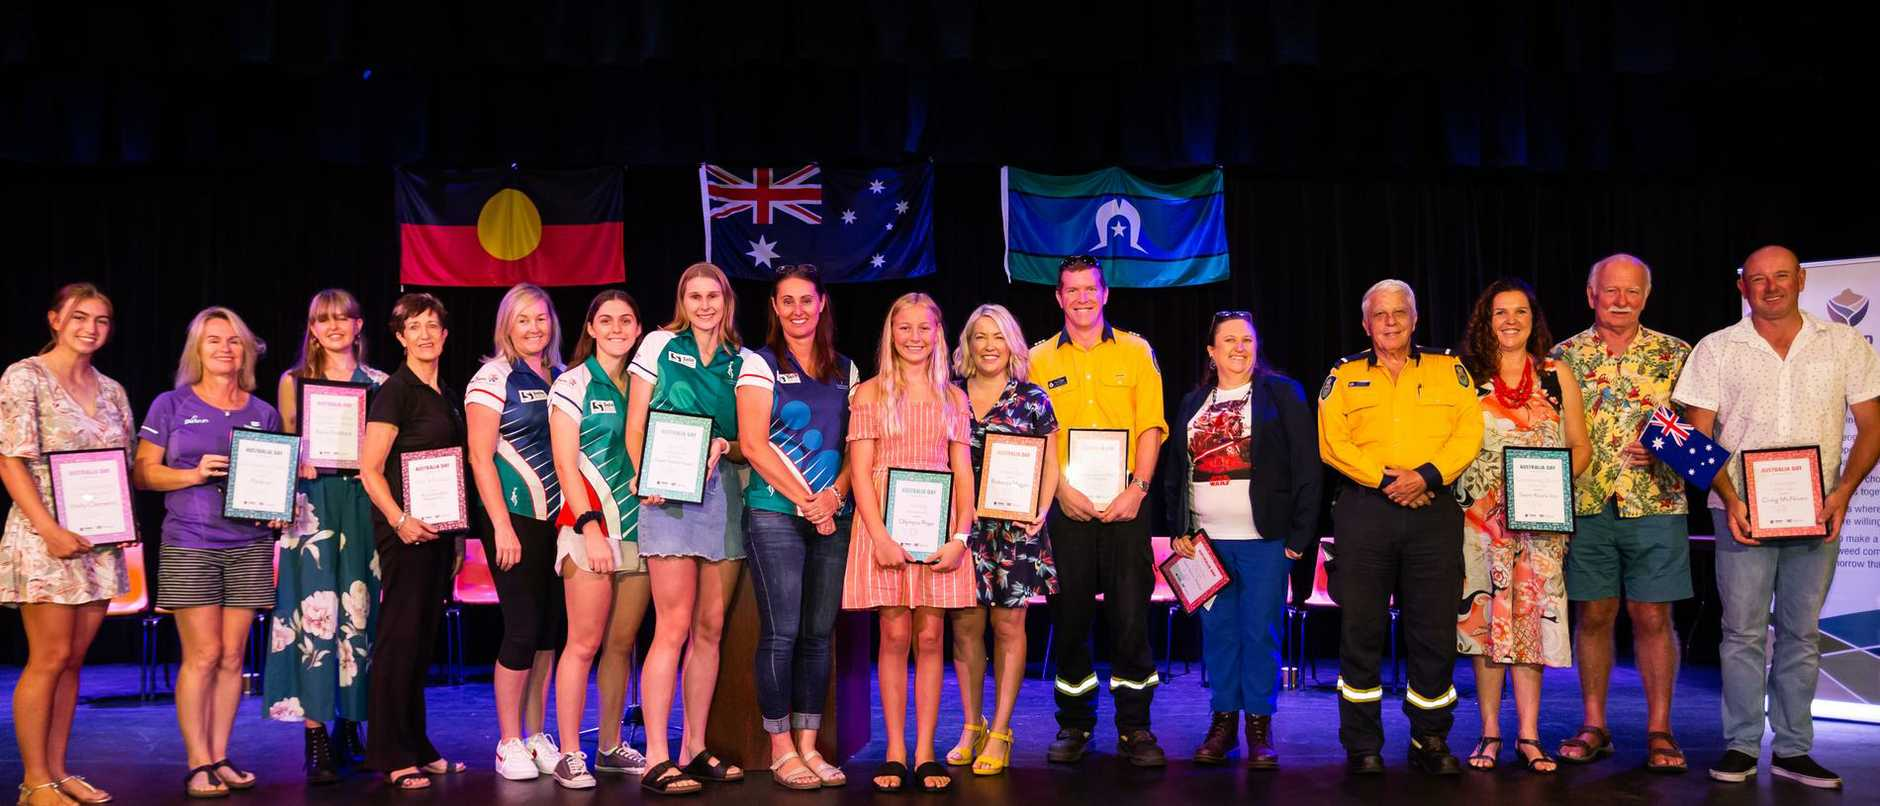 Tweed Shire Australia Day Award winners, including recipients of Honourable Mention awards. Photo: SUPPLIED